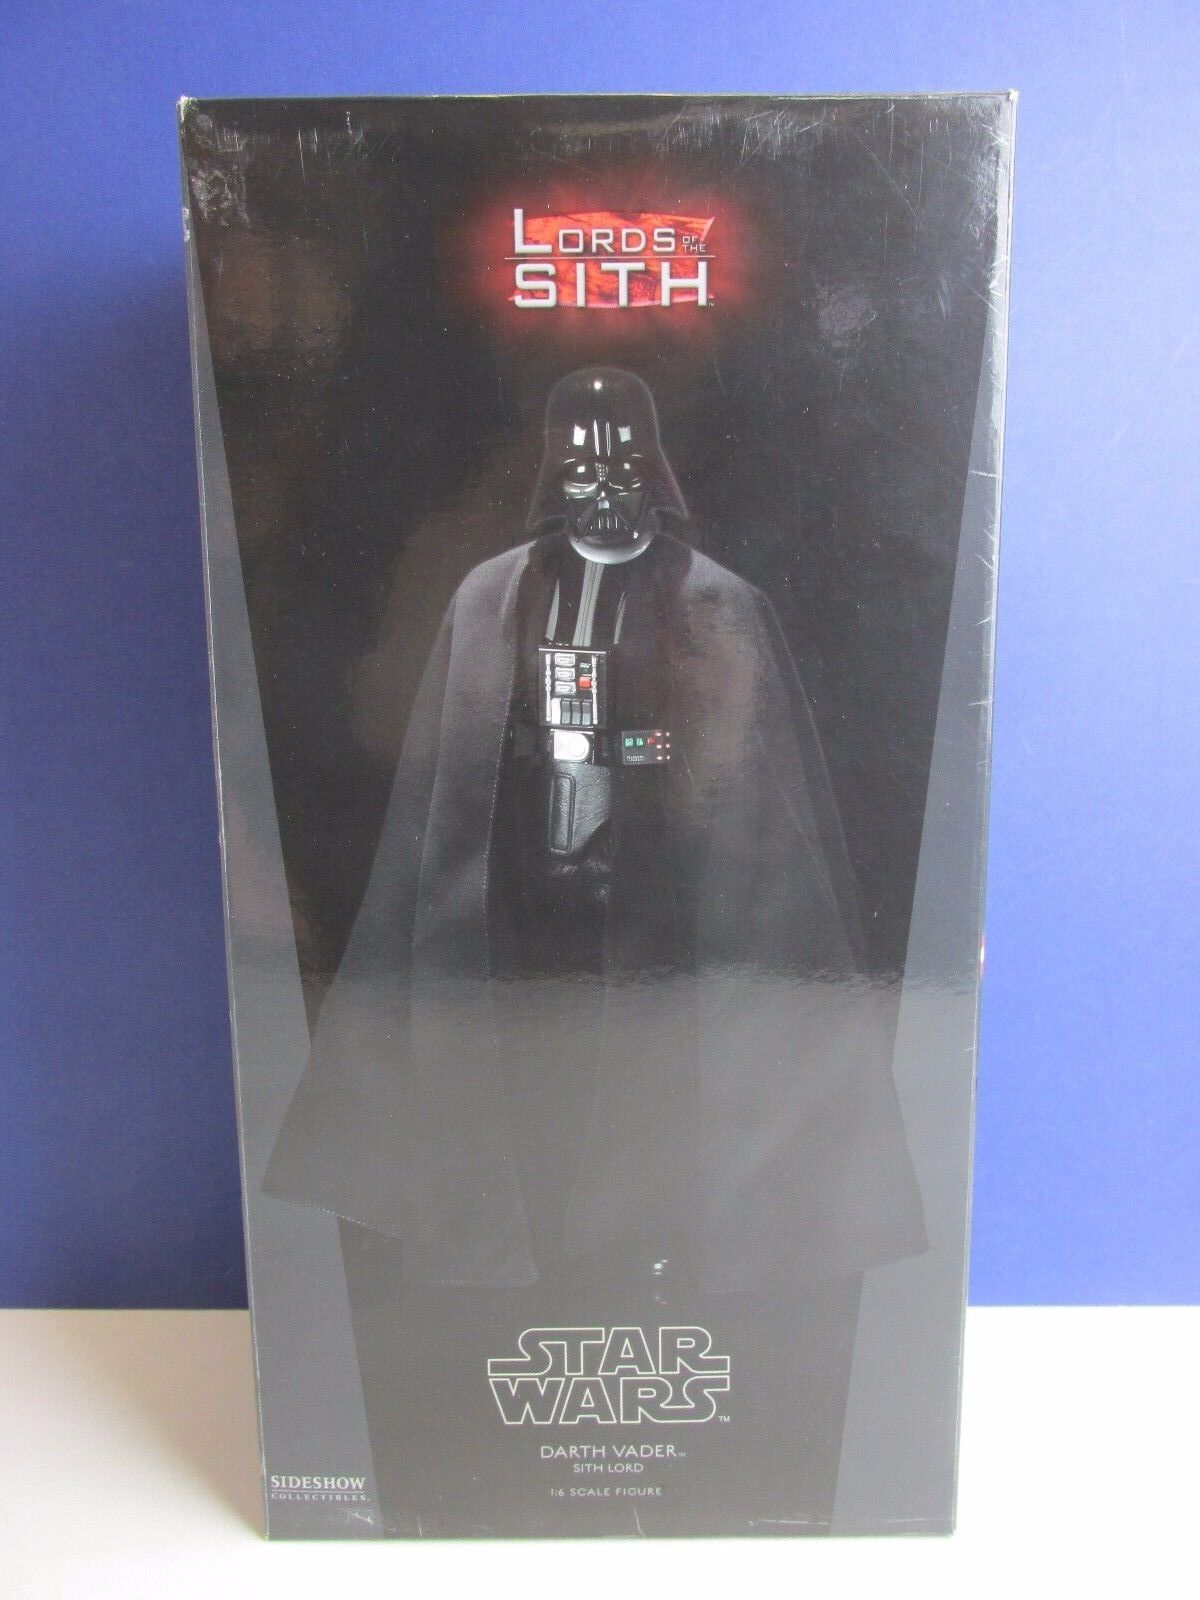 Star wars SIDESHOW DARTH VADER ACTION FIGURE 1 6 scale LORD OF THE SITH 2009